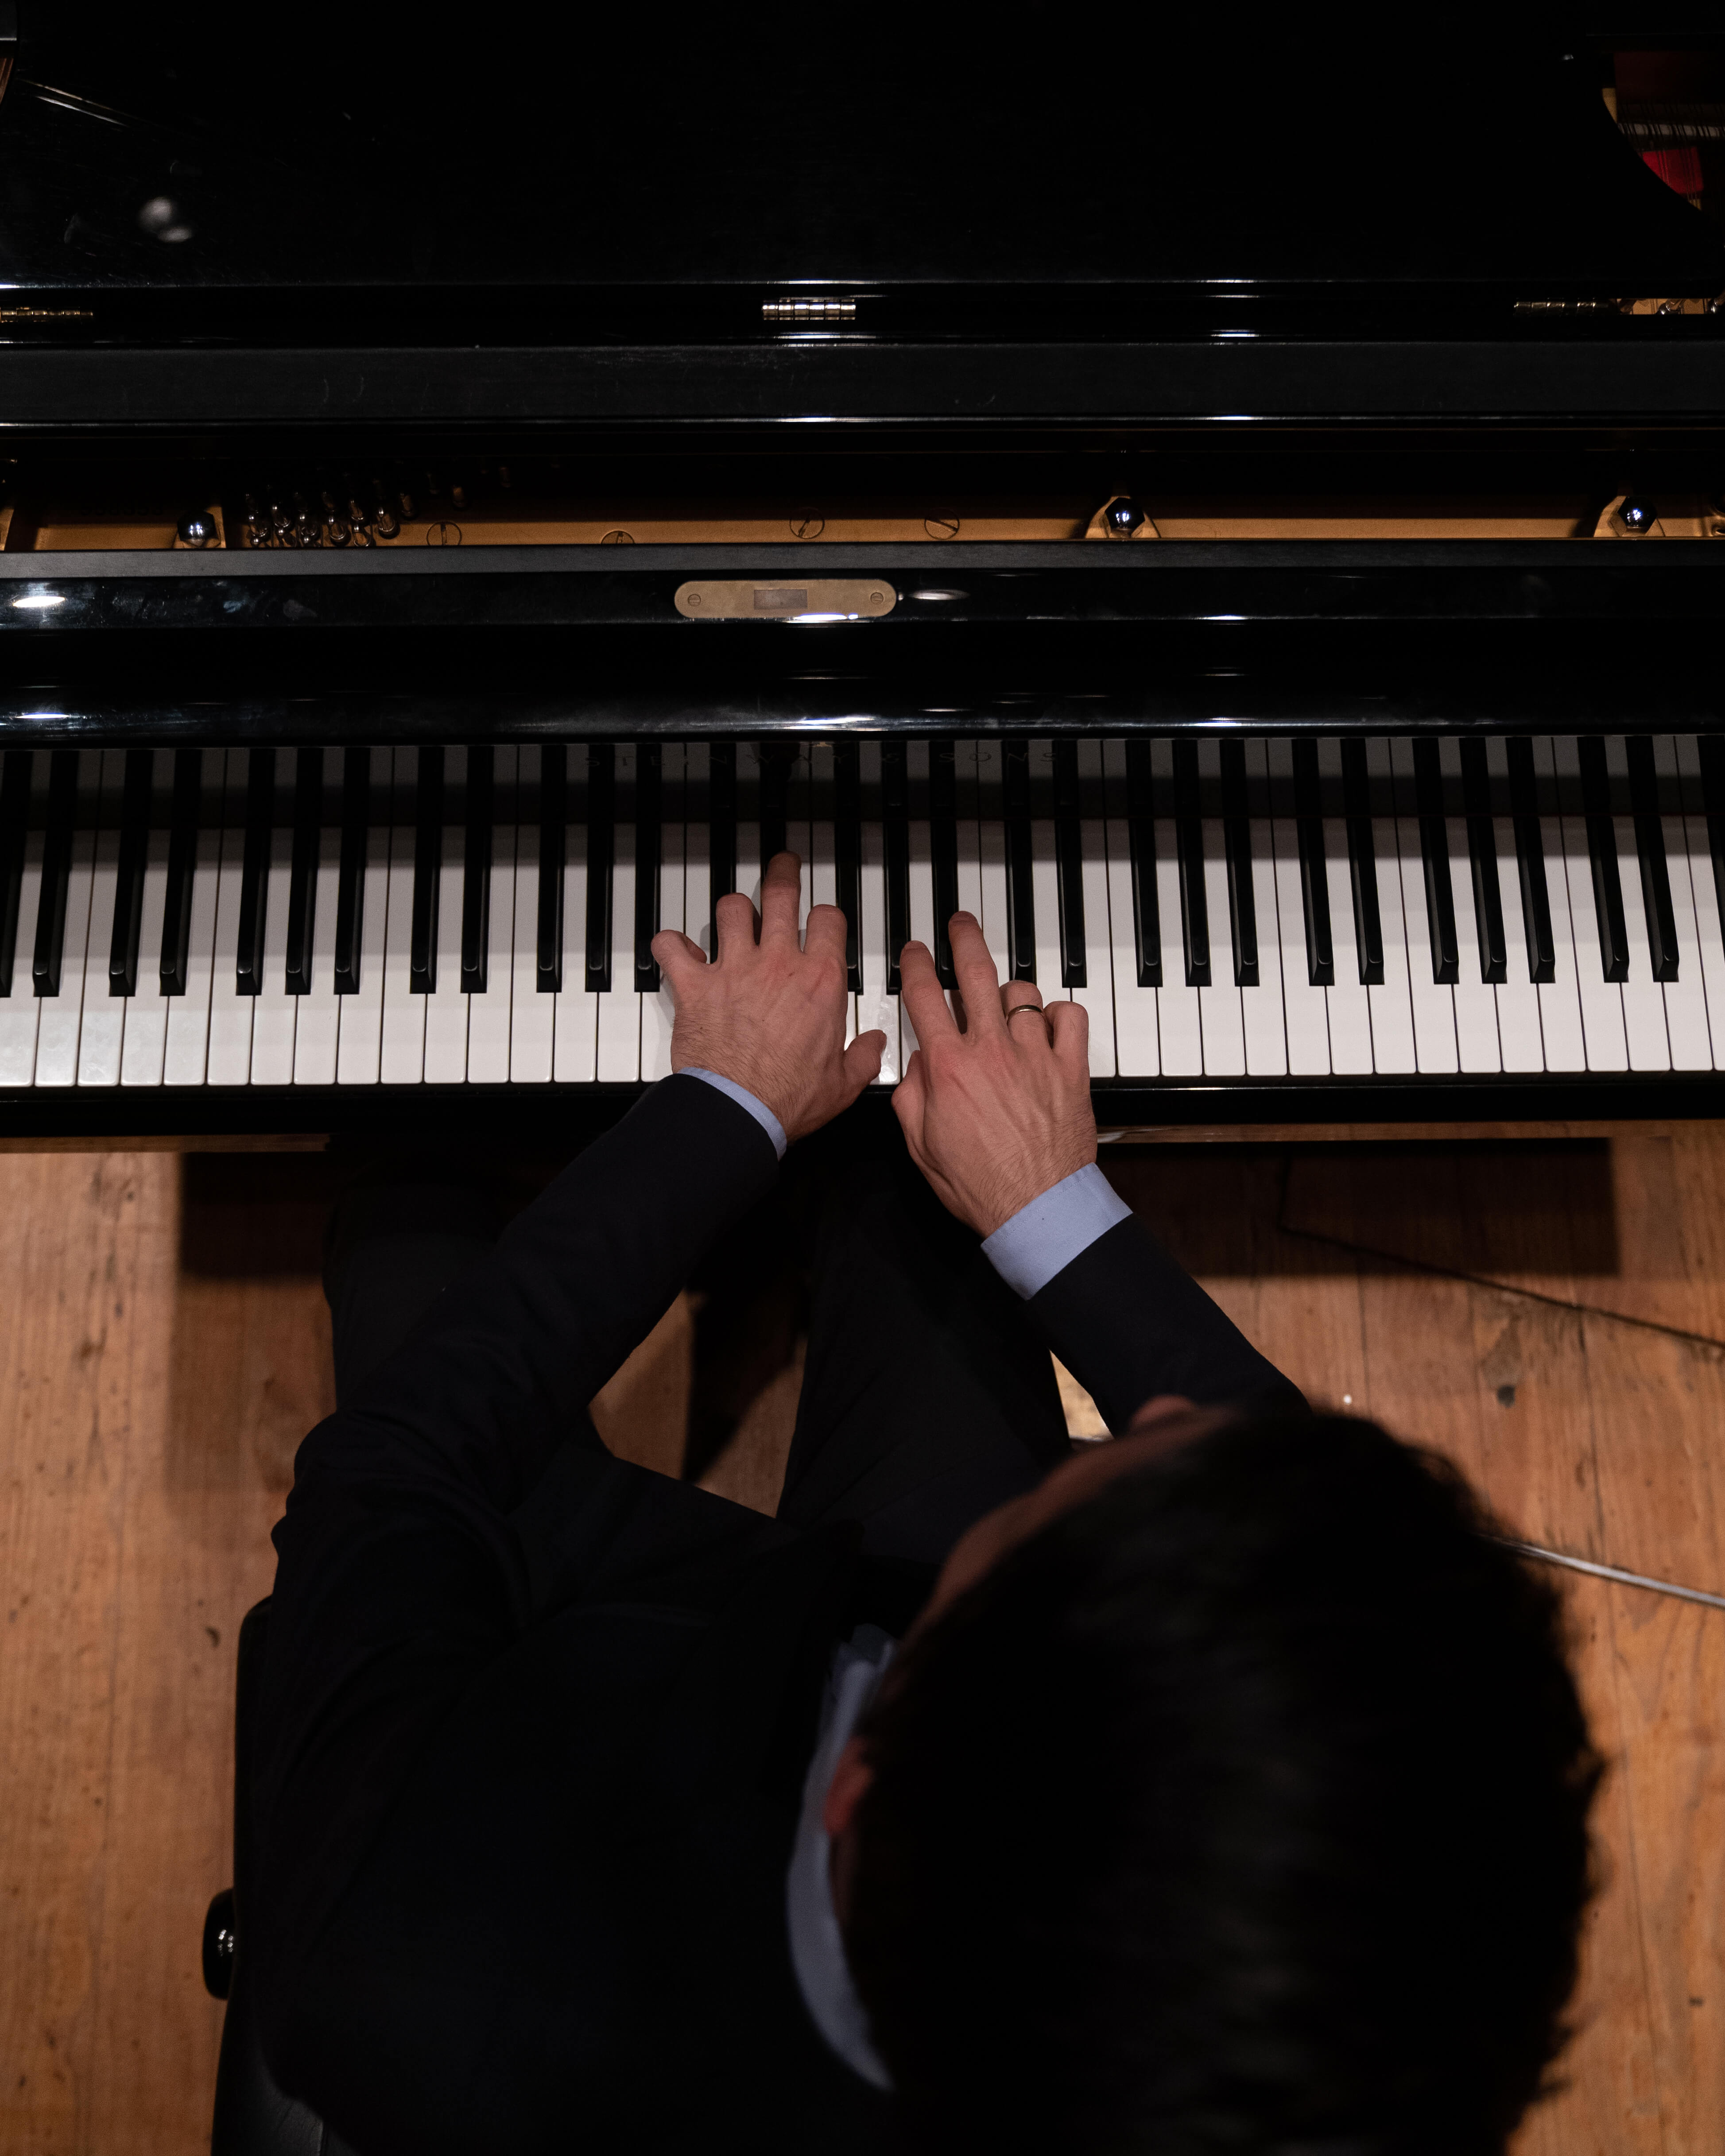 Pianist with their hands on the keys from above.